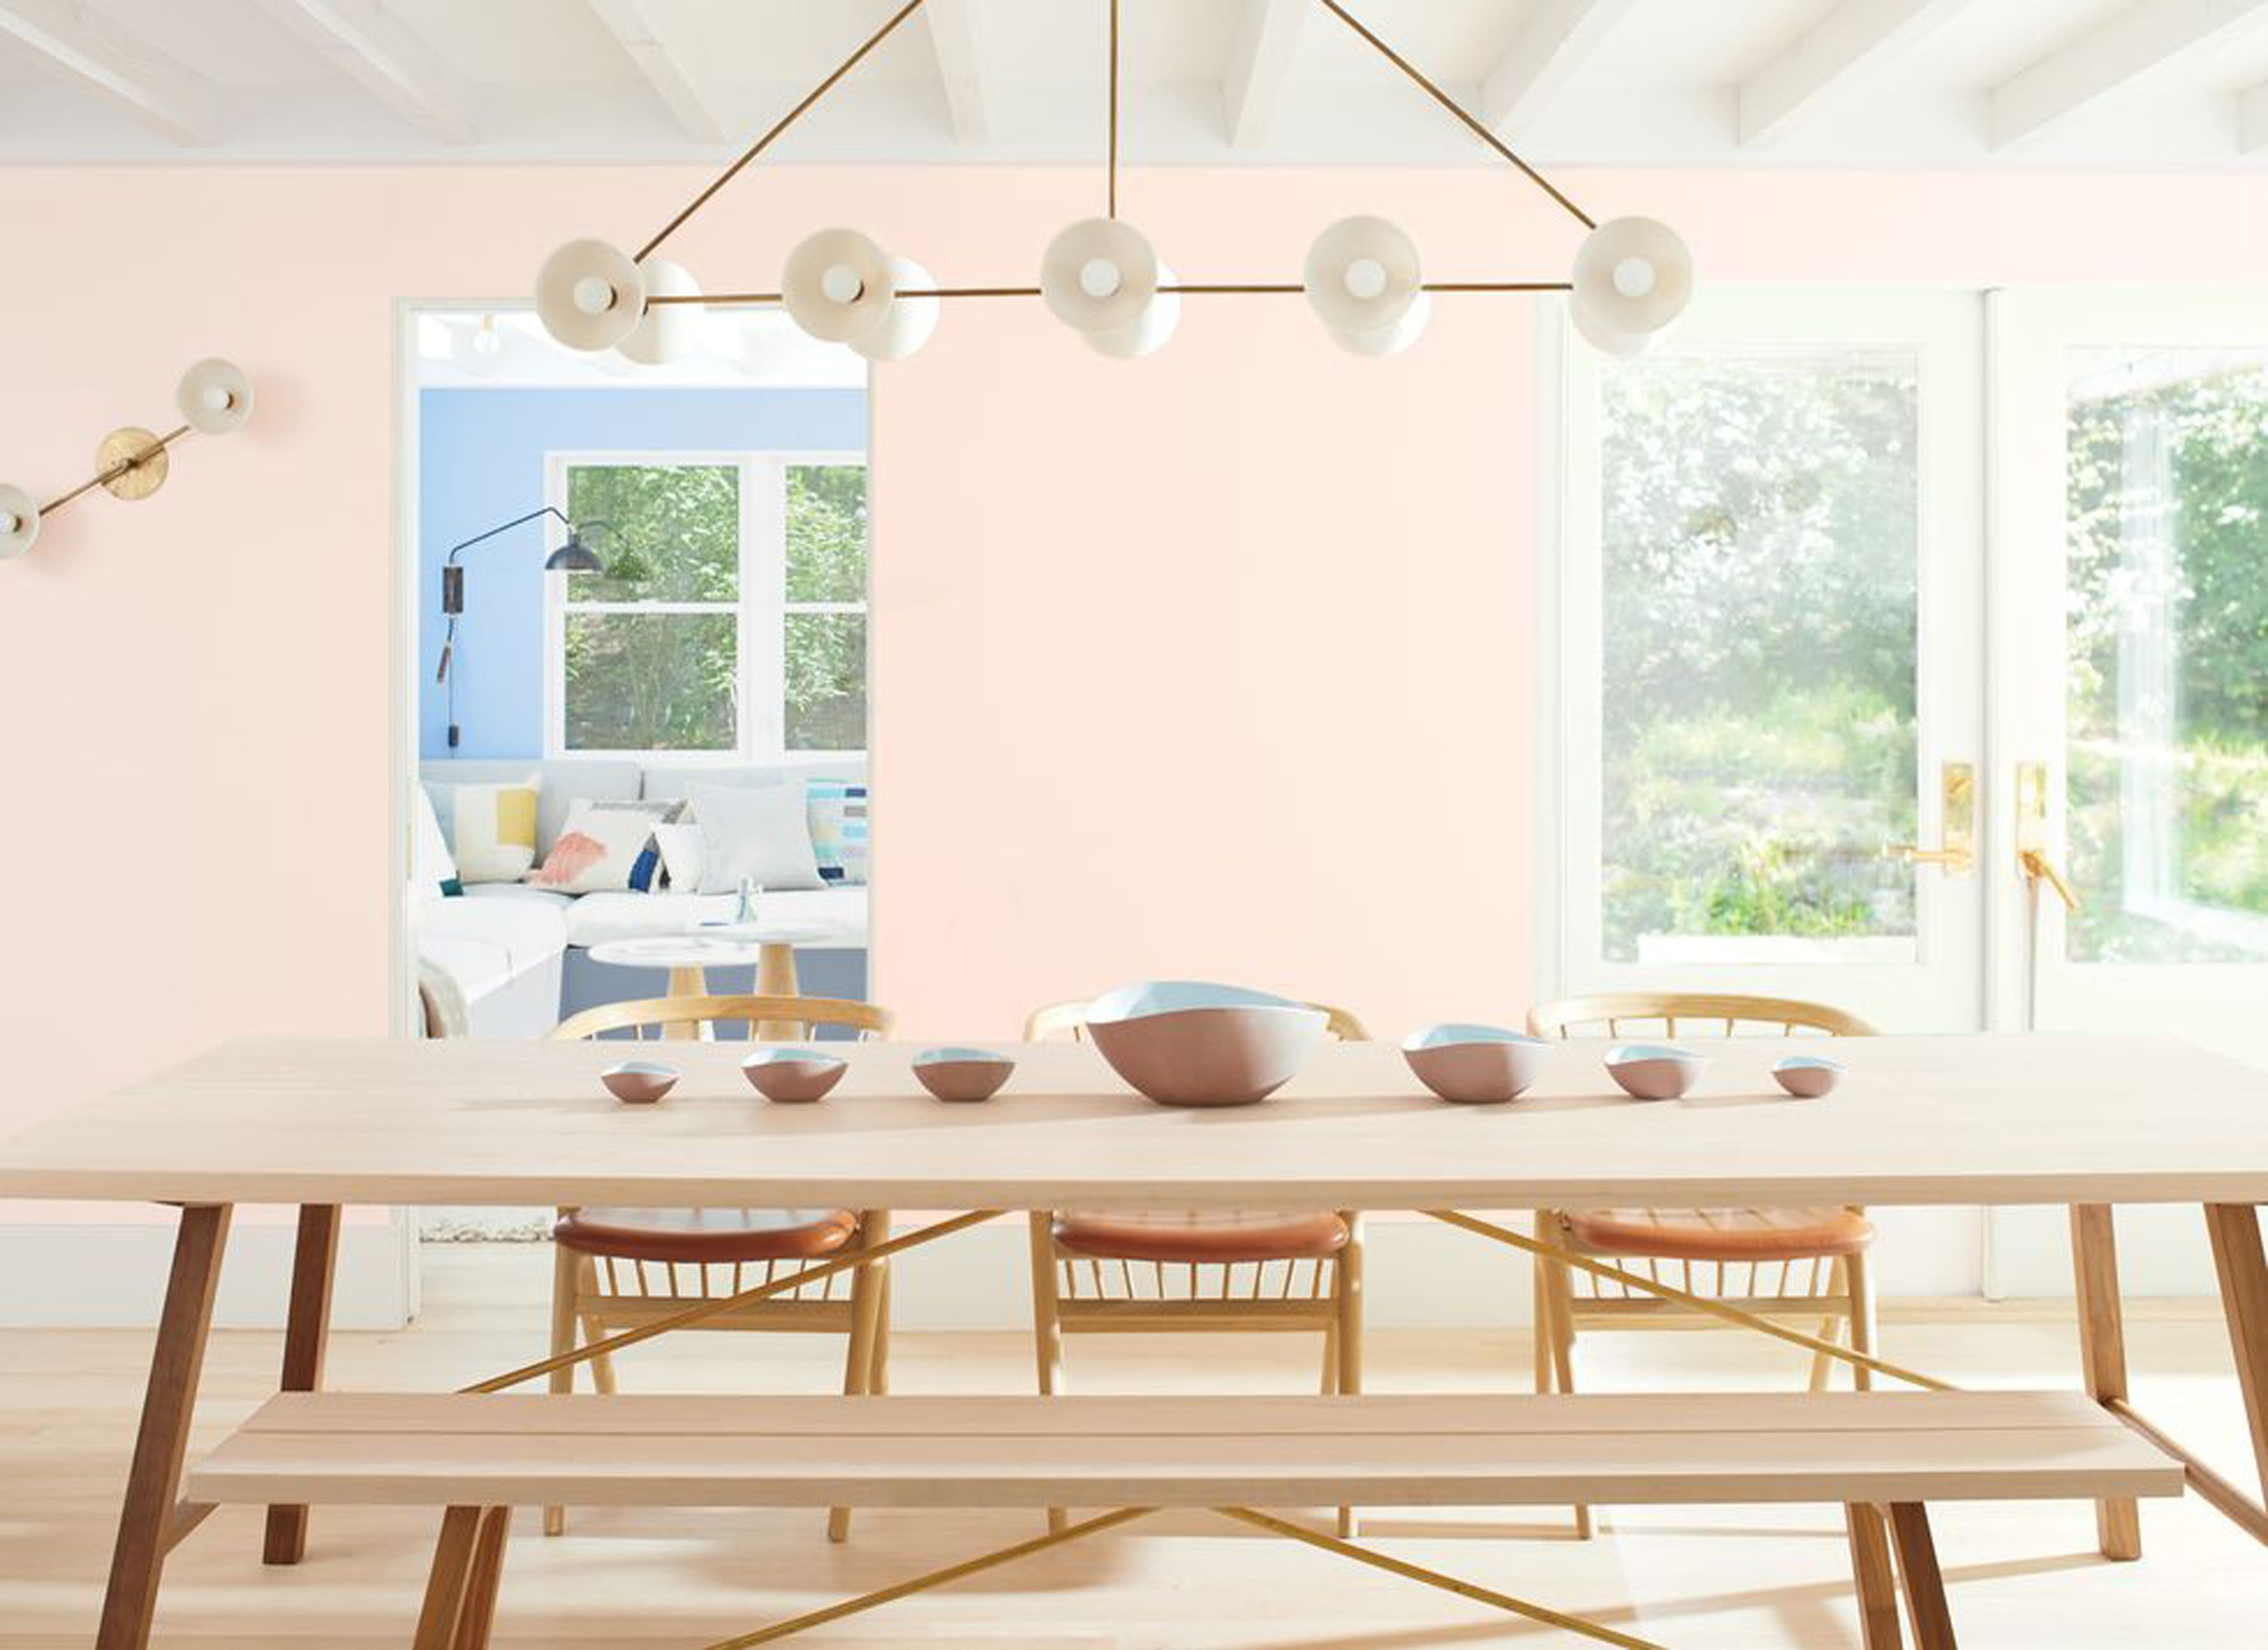 Benjamin Moore Just Revealed Its 2020 Color of the Year